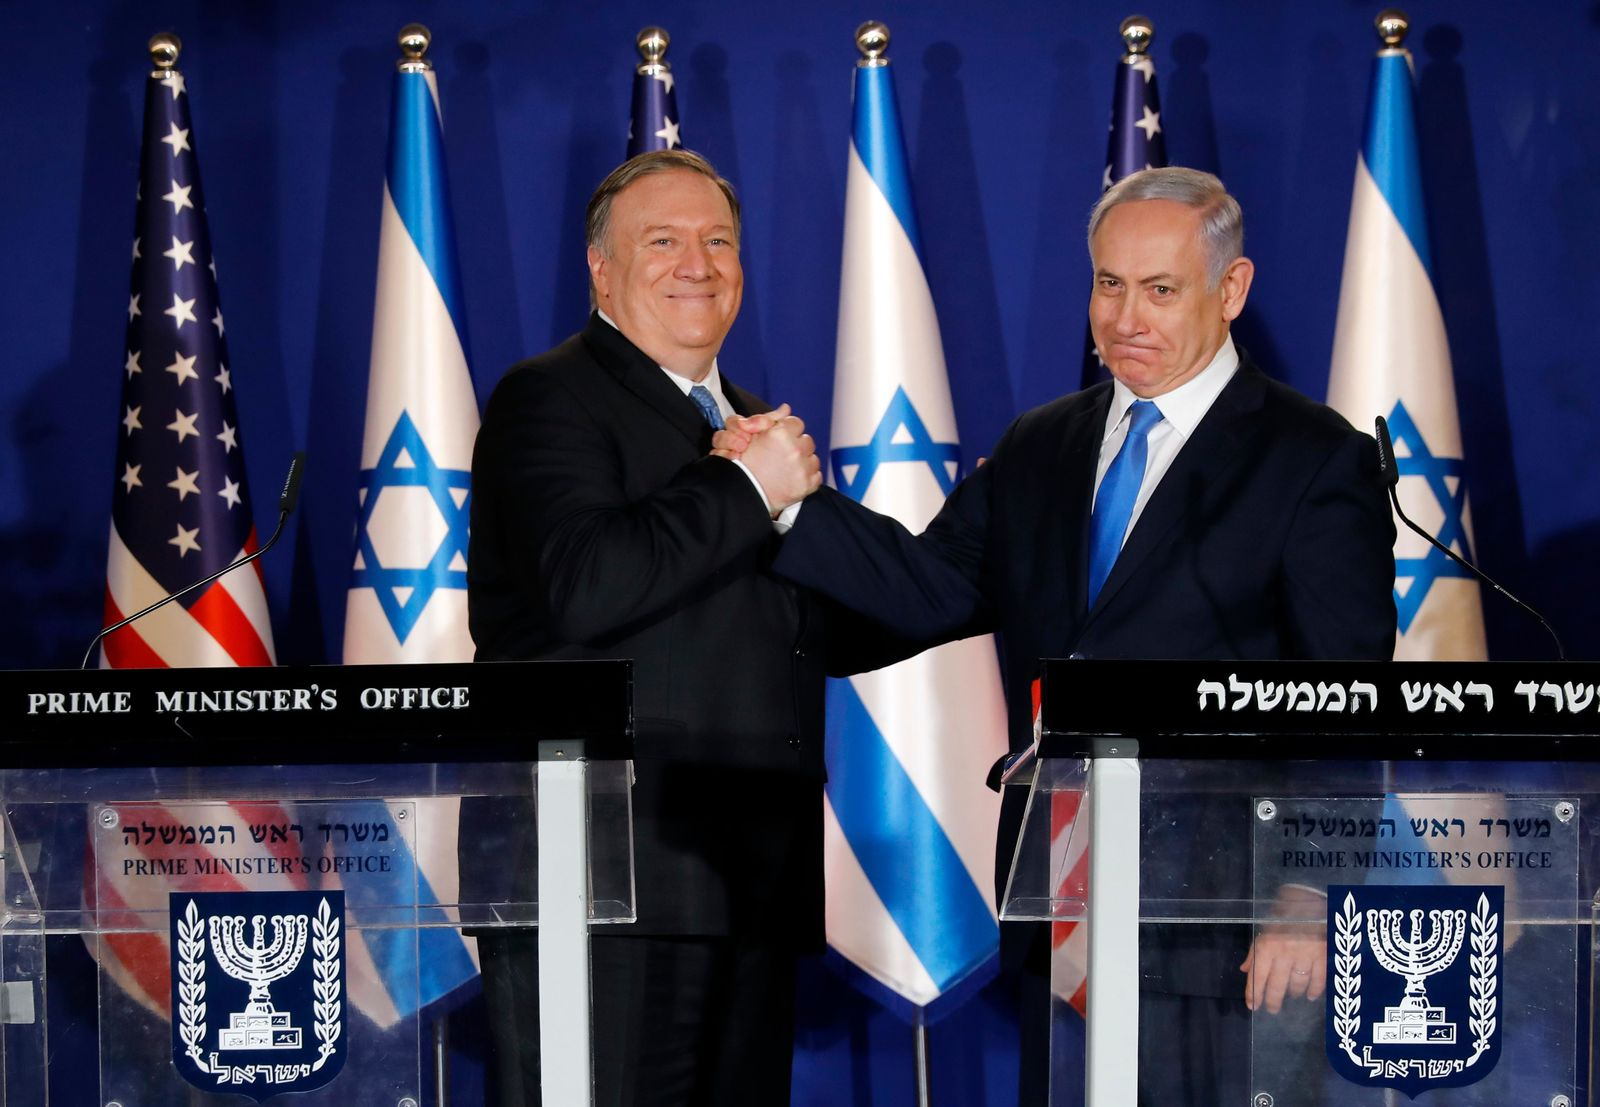 U.S. Secretary of State Mike Pompeo, left, shakes hands with Israeli Prime Minister Benjamin Netanyahu, during their visit to Netanyahu's official residence in Jerusalem, Thursday March 21, 2019.{ } (Amir Cohen/Pool via AP)